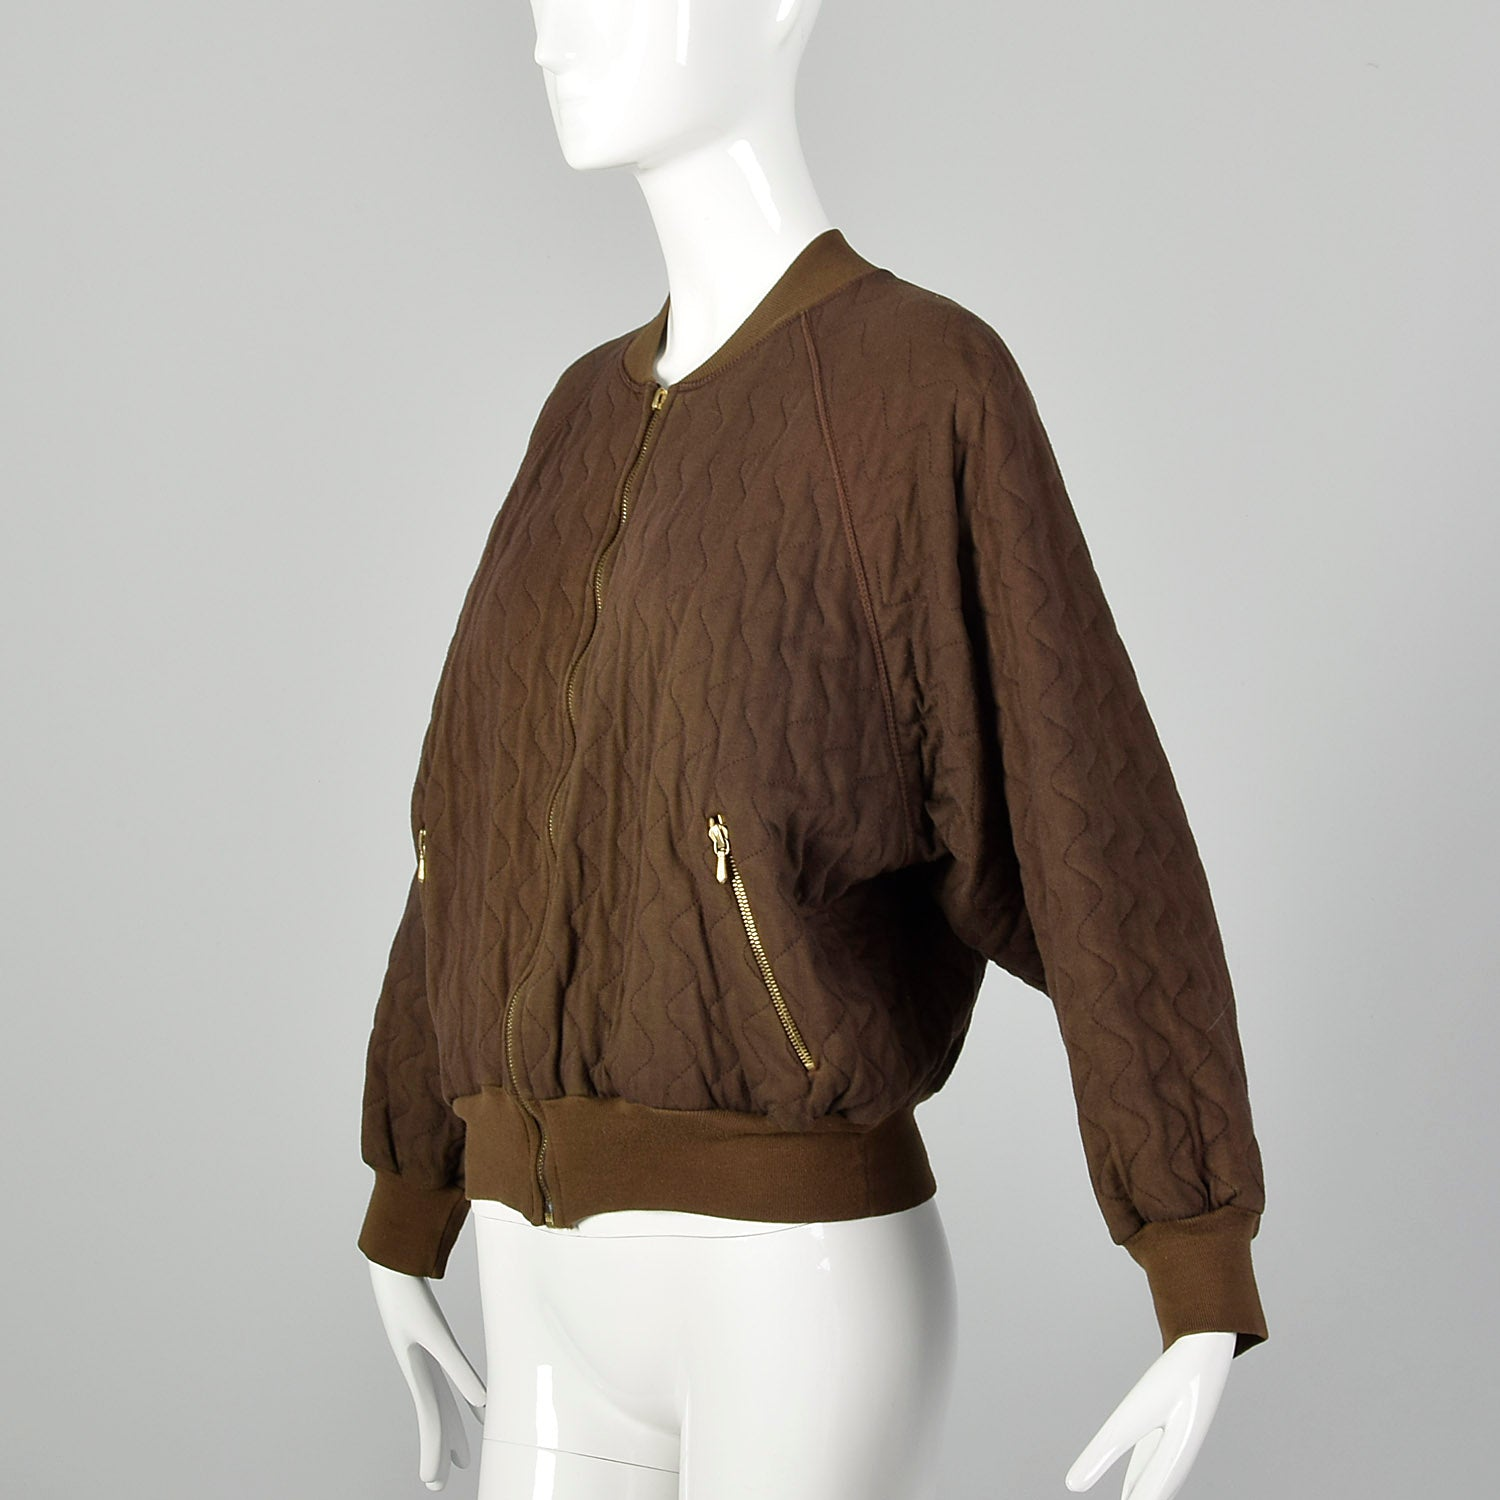 XL Sonia Rykiel 1990s Brown Quilted Bomber Jacket